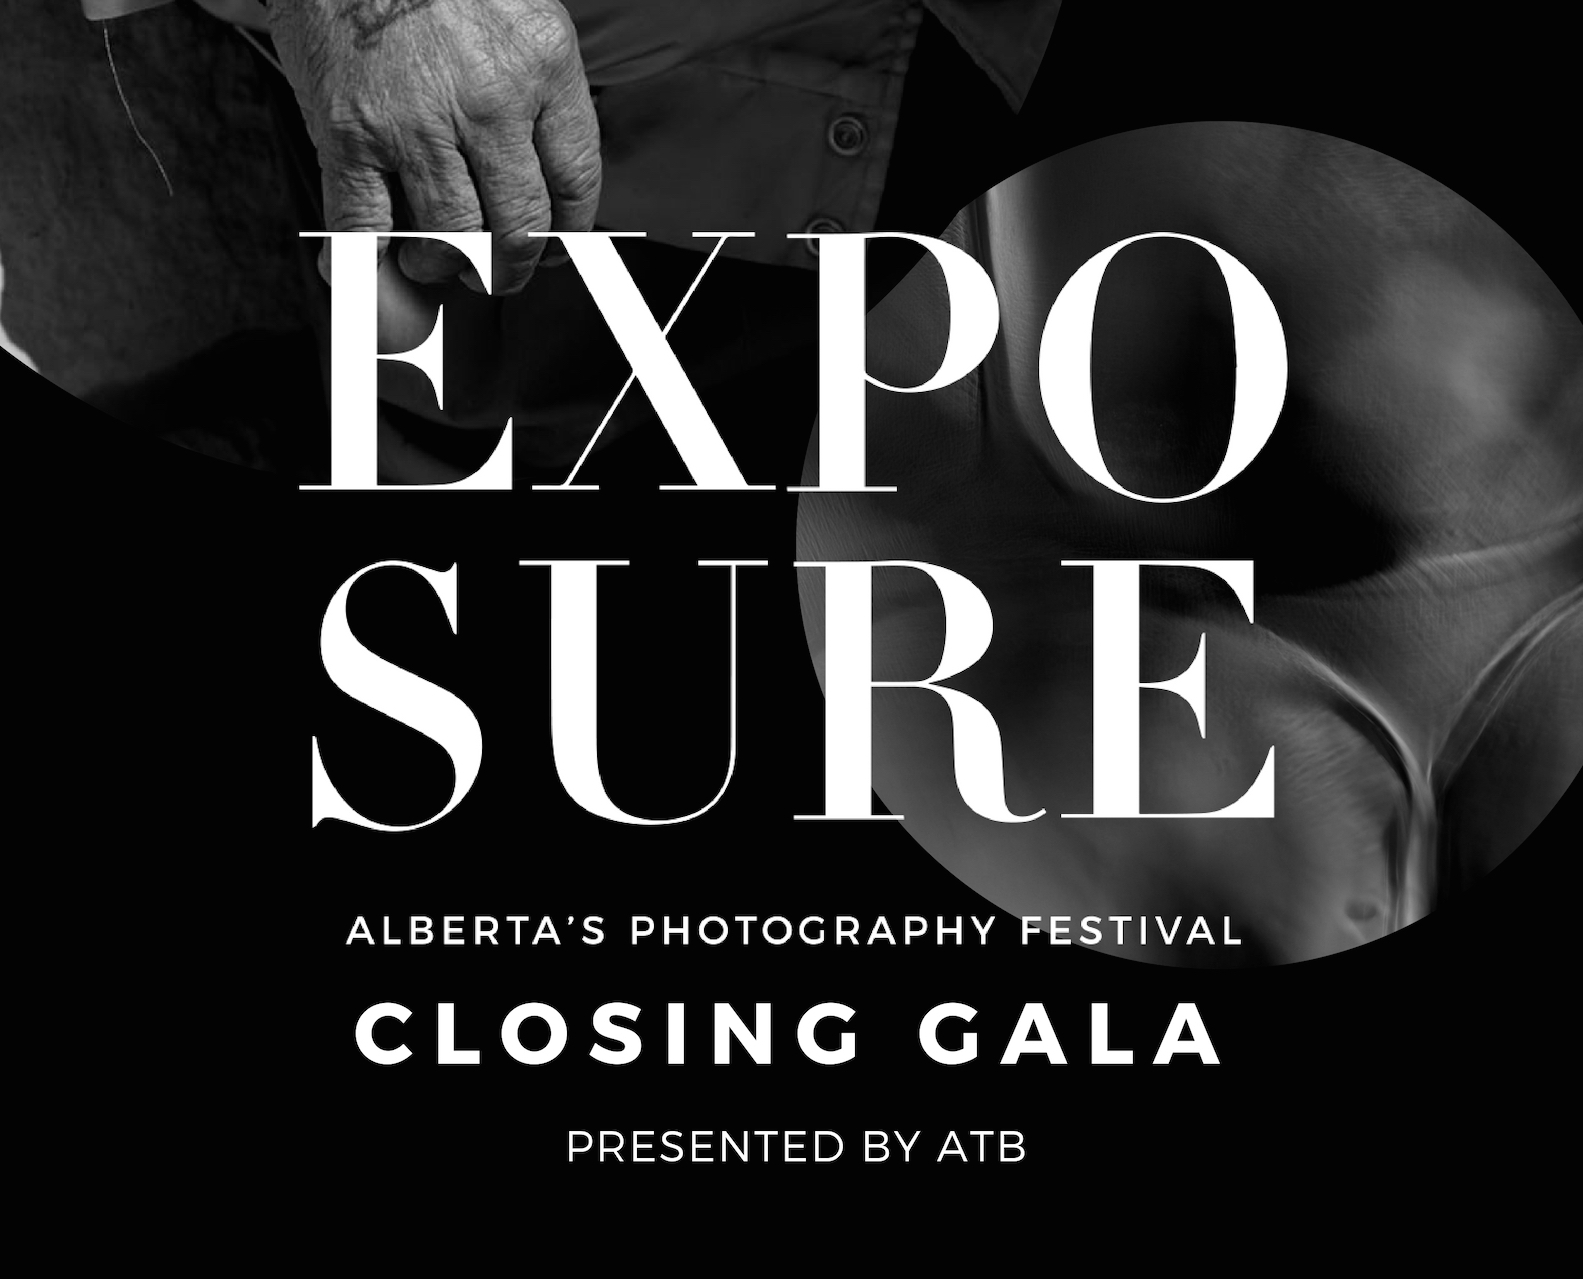 Closing Gala, presented by ATB